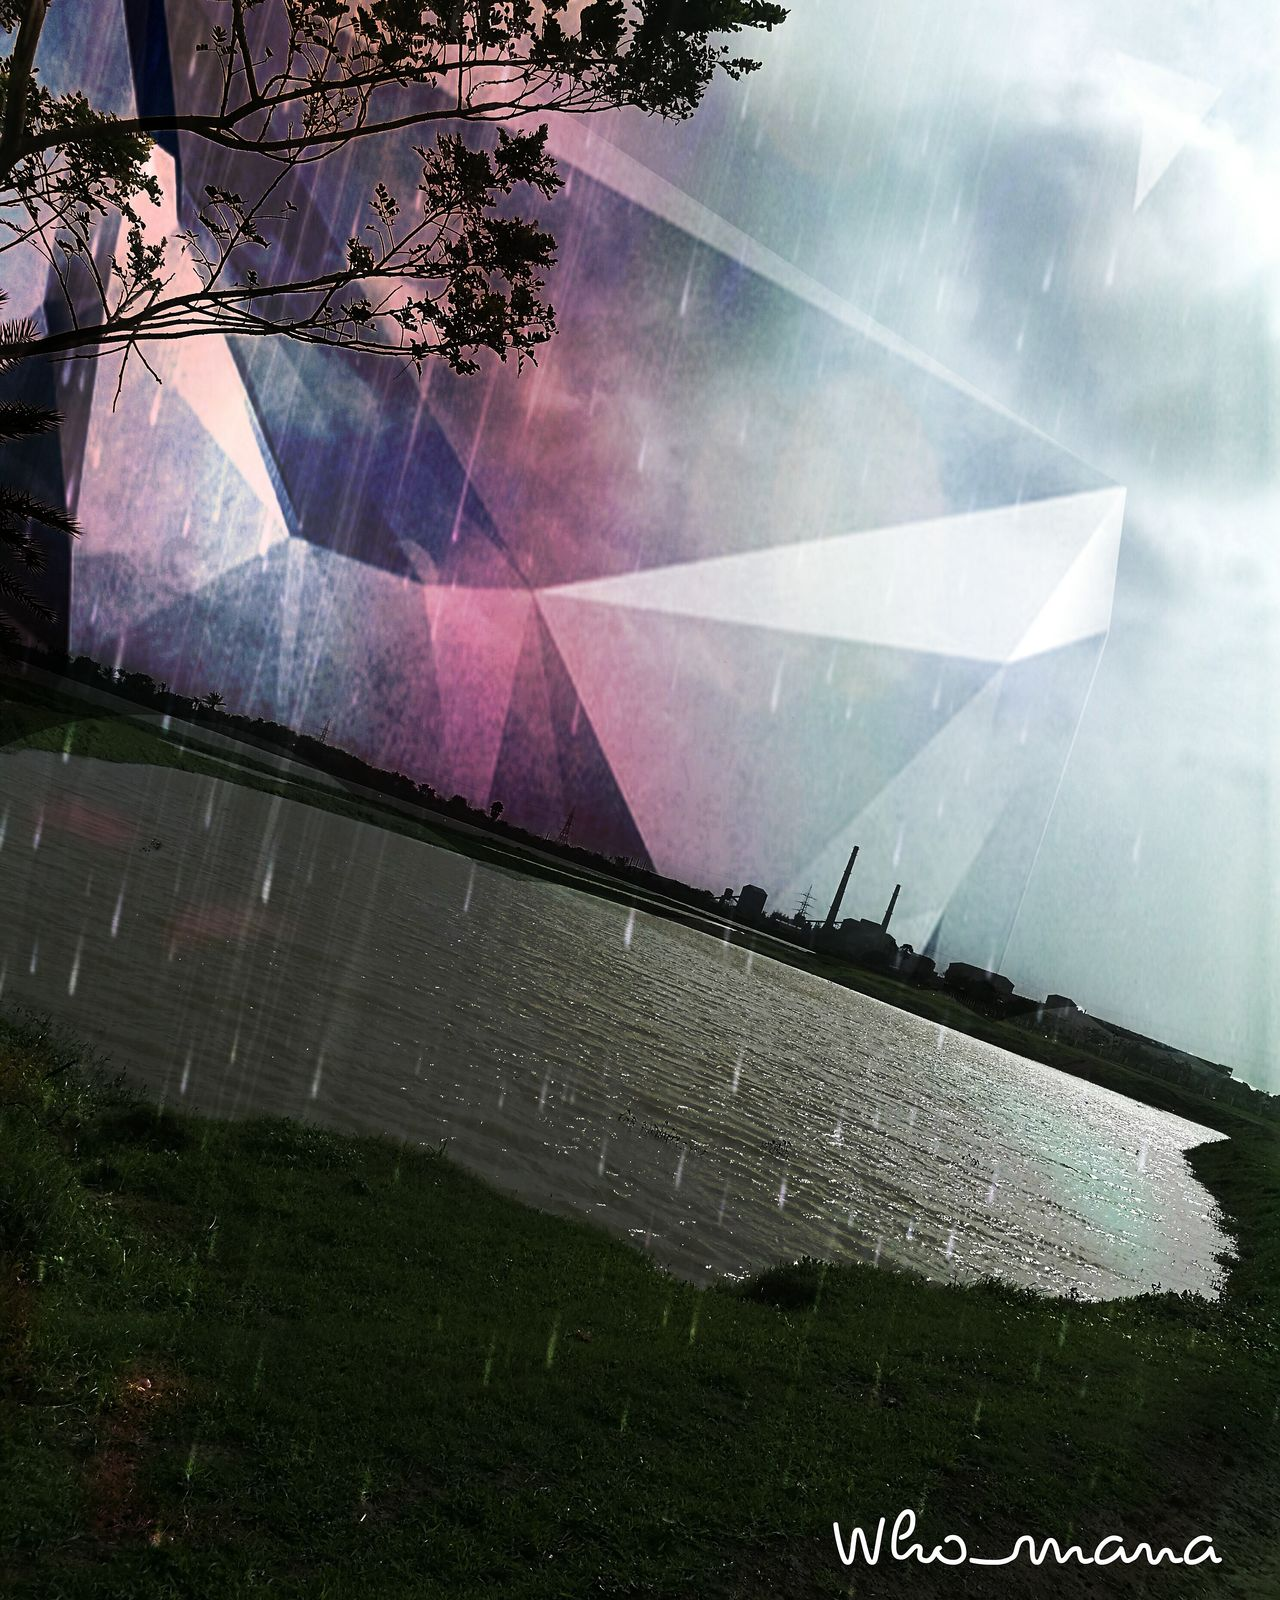 India Life Love ♥ Filters Are Fun Art Dreaming Original Experiences Layers And Colors Pixlr Blackandwhite Myselfcoloursplash Deadbutalive Scenery Movies Heartbroken Breaking Free